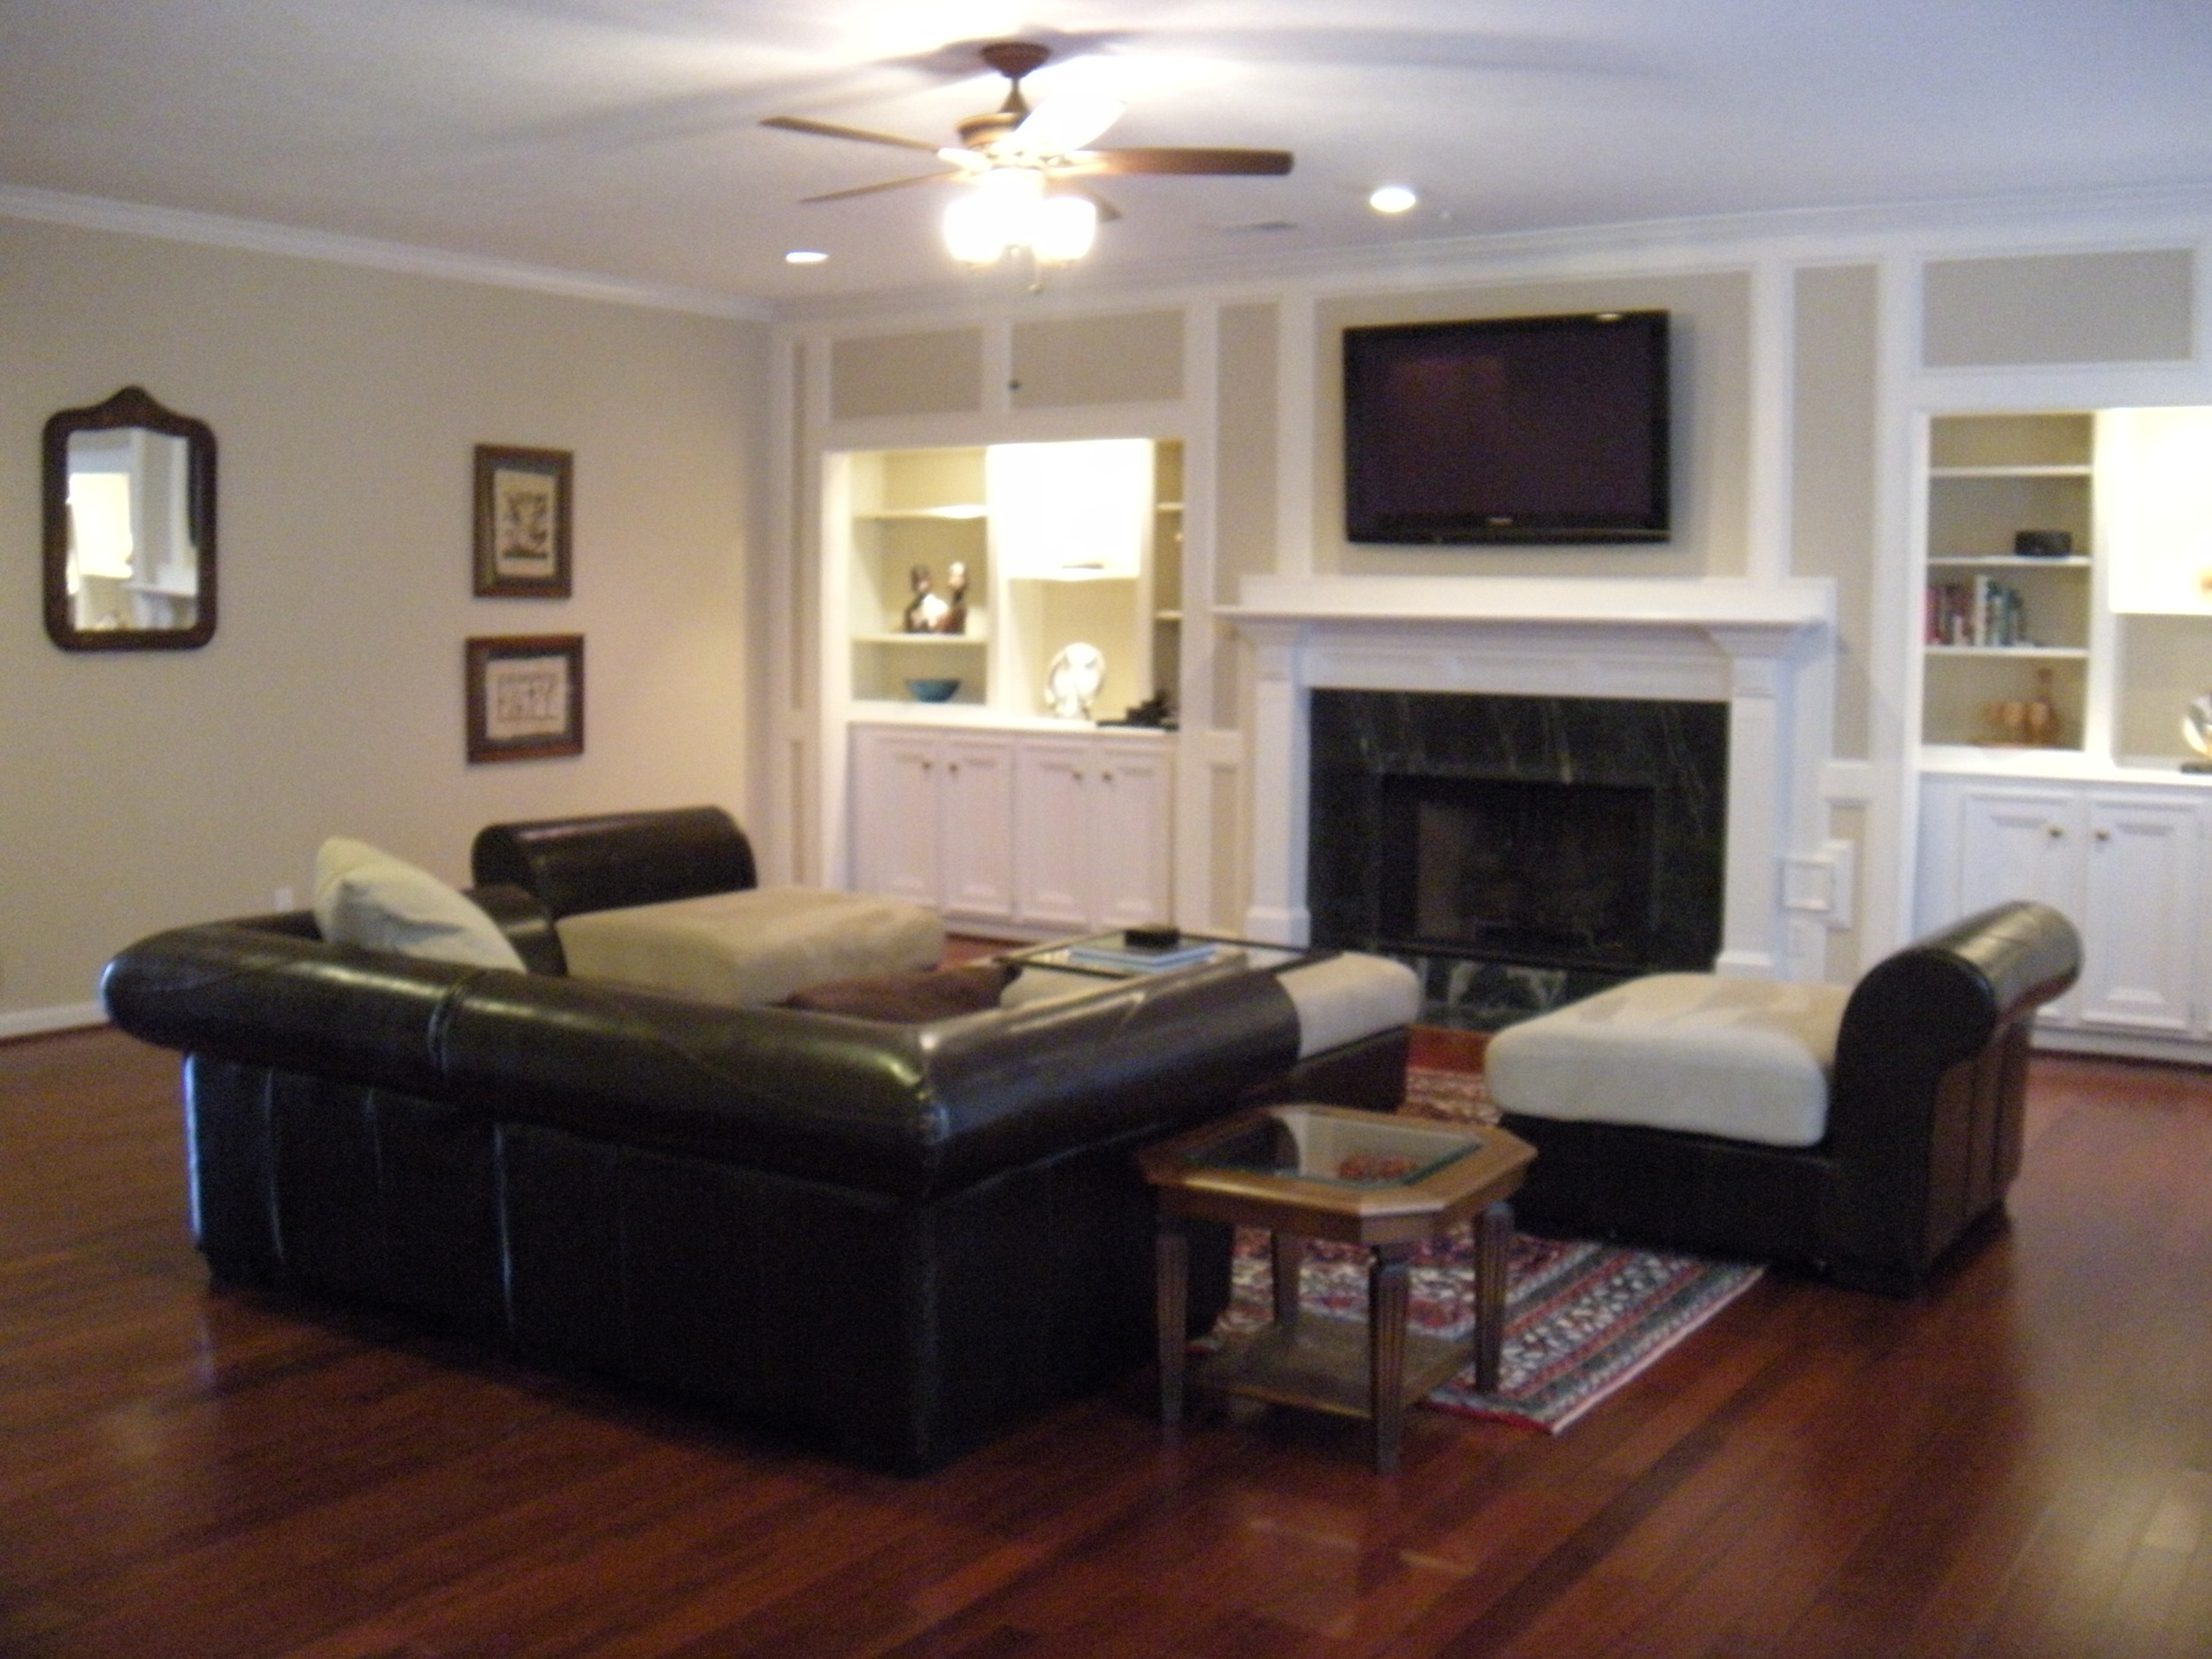 Doesn't our living room look huge with the desk and chests gone?